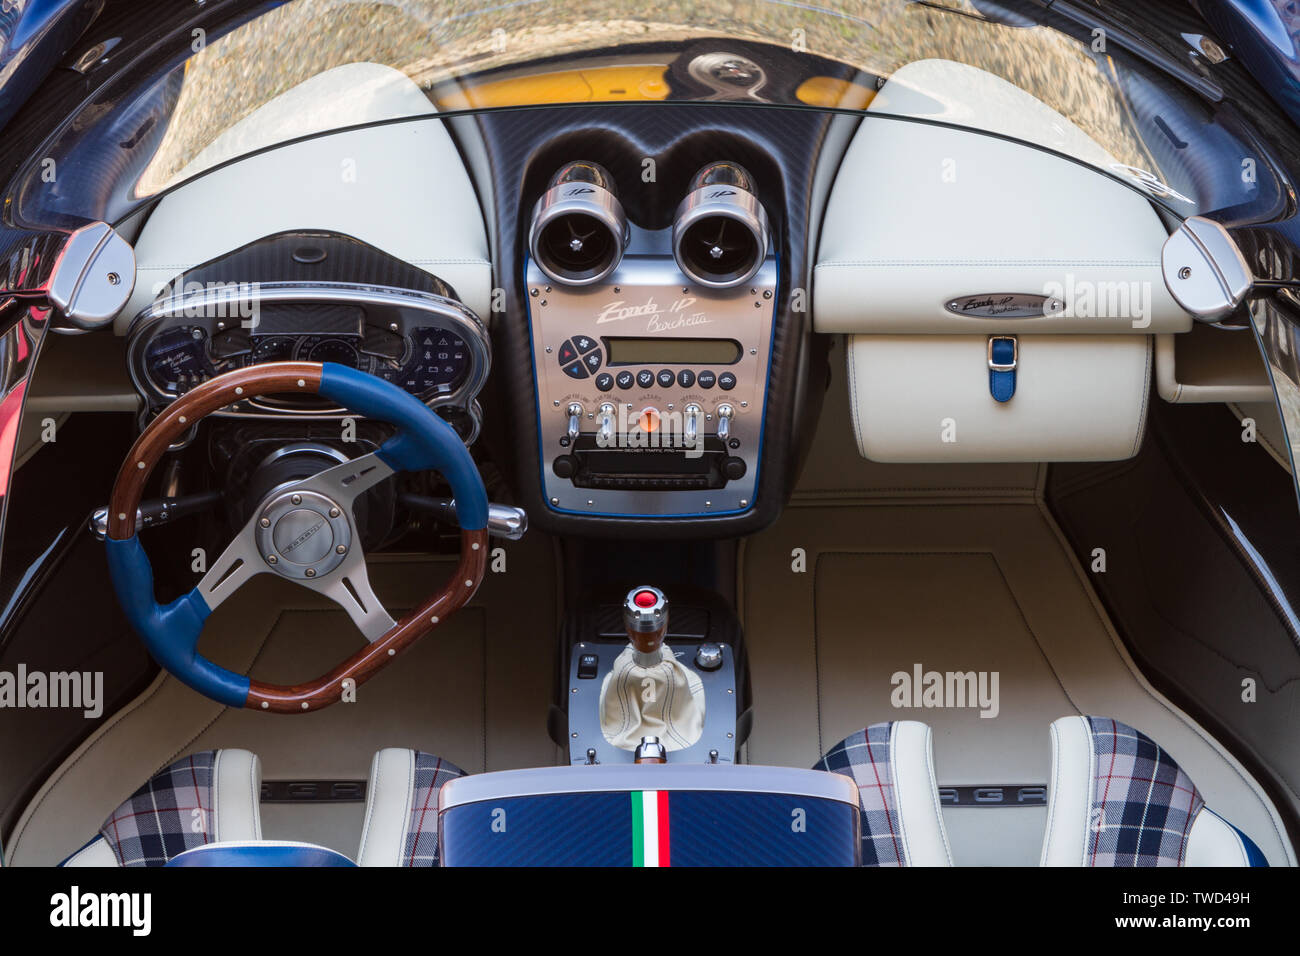 Interior View And Dashboard Of Pagani Zonda Hp Barchetta 2019 Edition Of Parco Valentino Car Show Hosts Cars By Many Brands And Car Designers Inside Valentino Park In Torino Italy Stock Photo